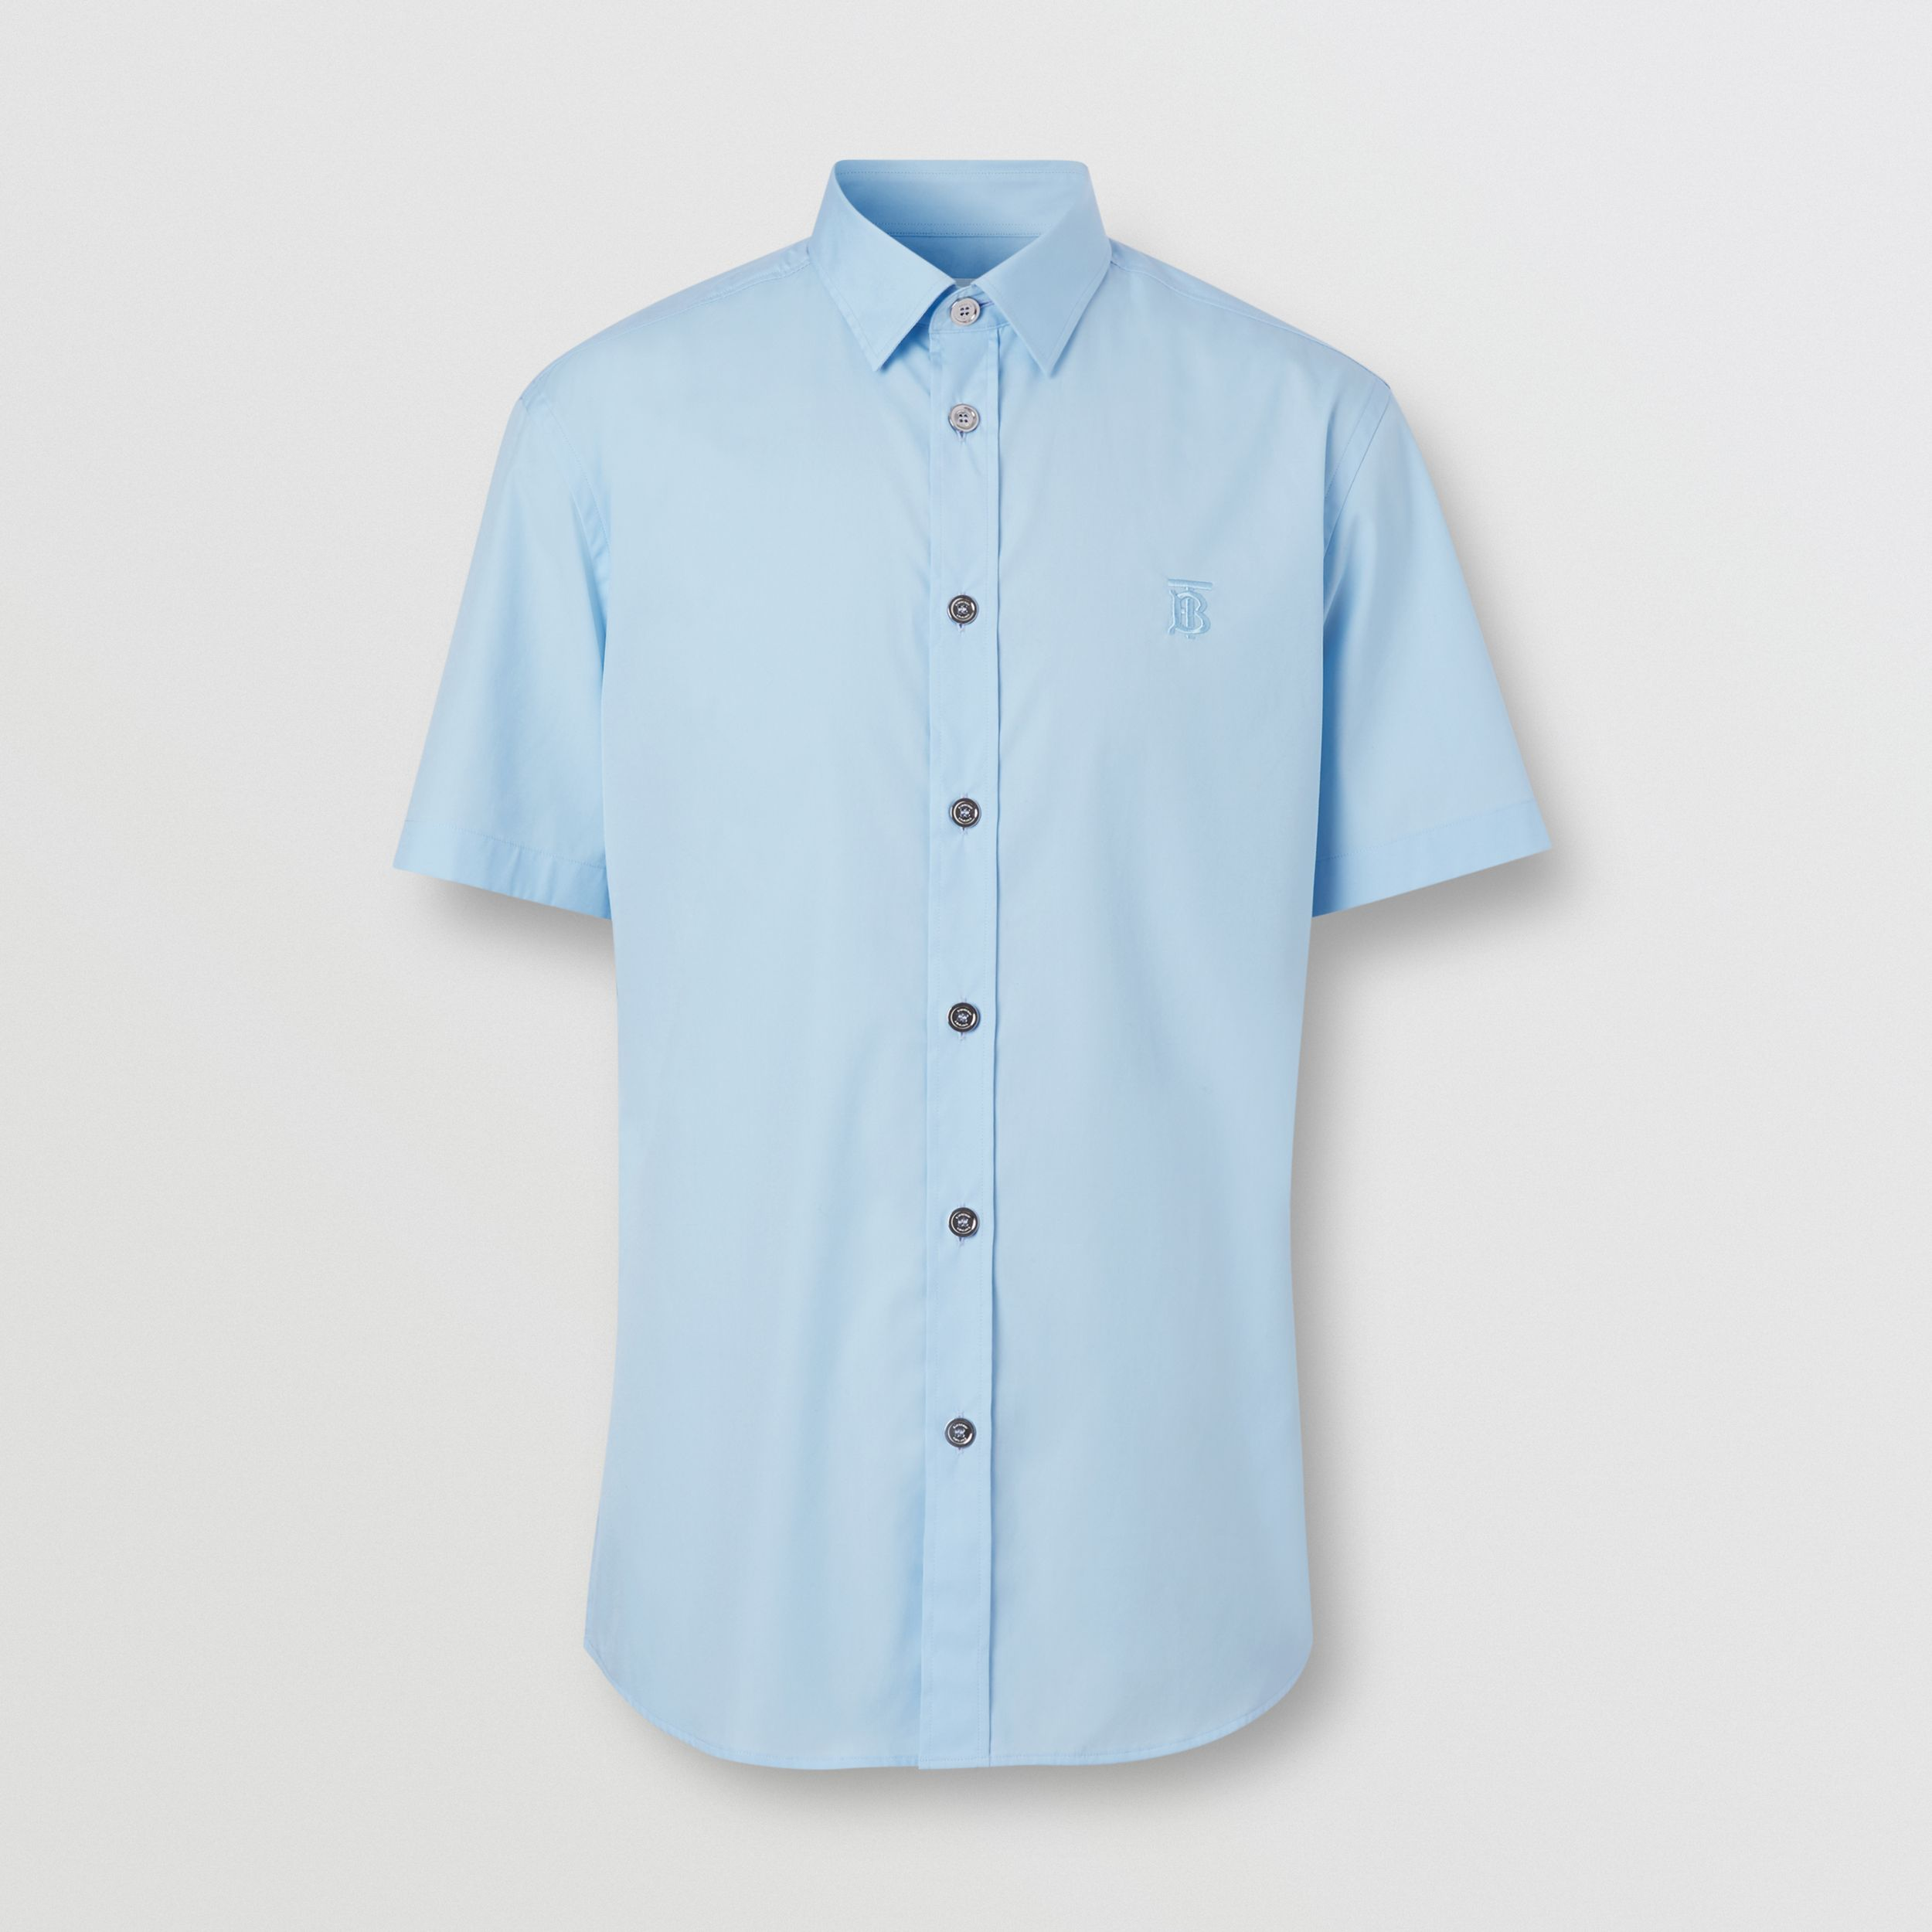 Short-sleeve Monogram Motif Stretch Cotton Shirt in Pale Blue - Men | Burberry - 4